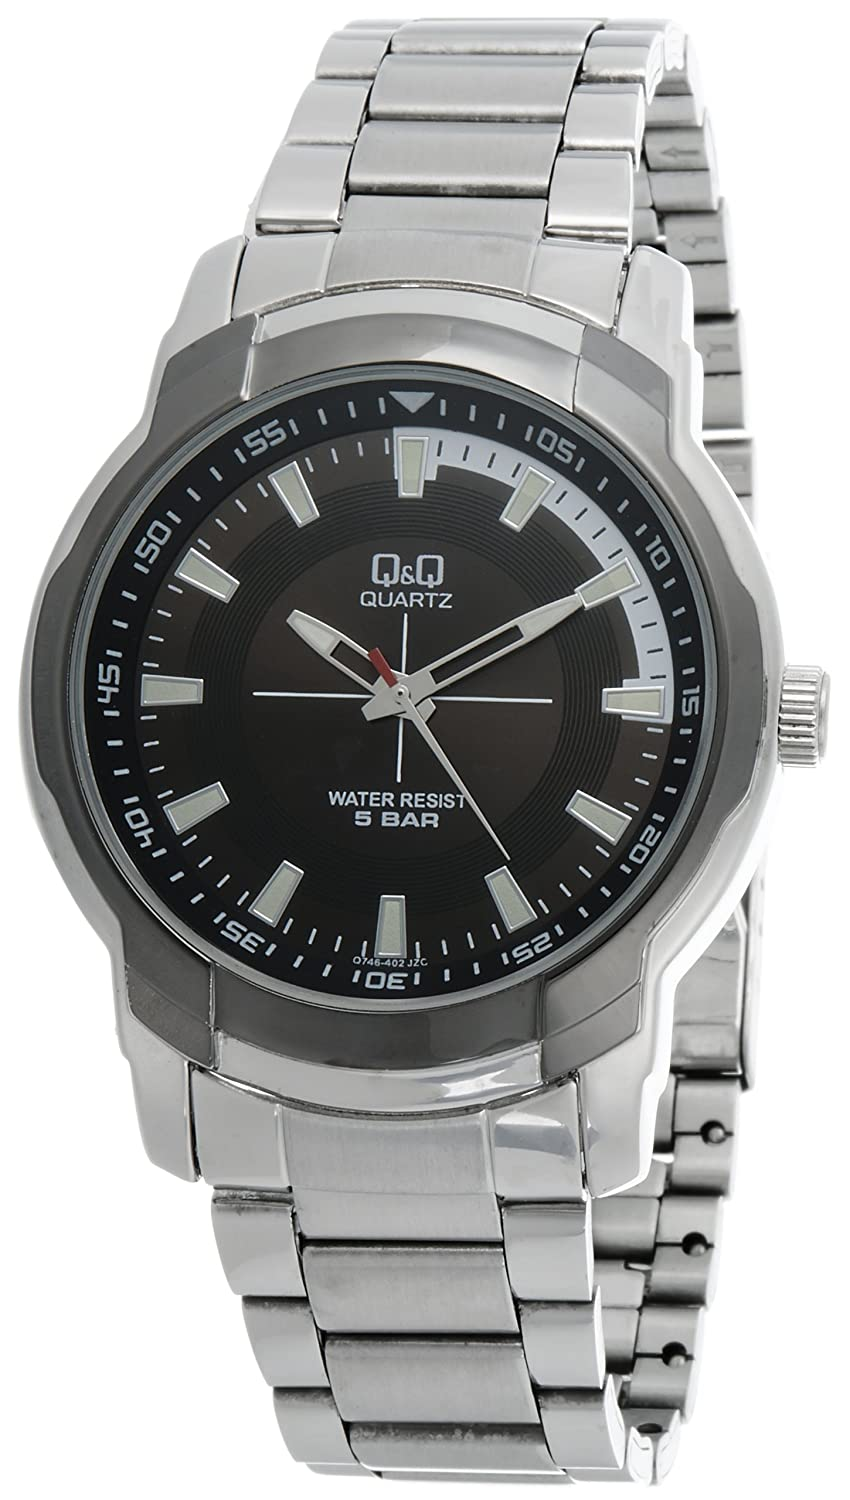 Q&Q Analog Black Dial Men's Watch at Rs 708